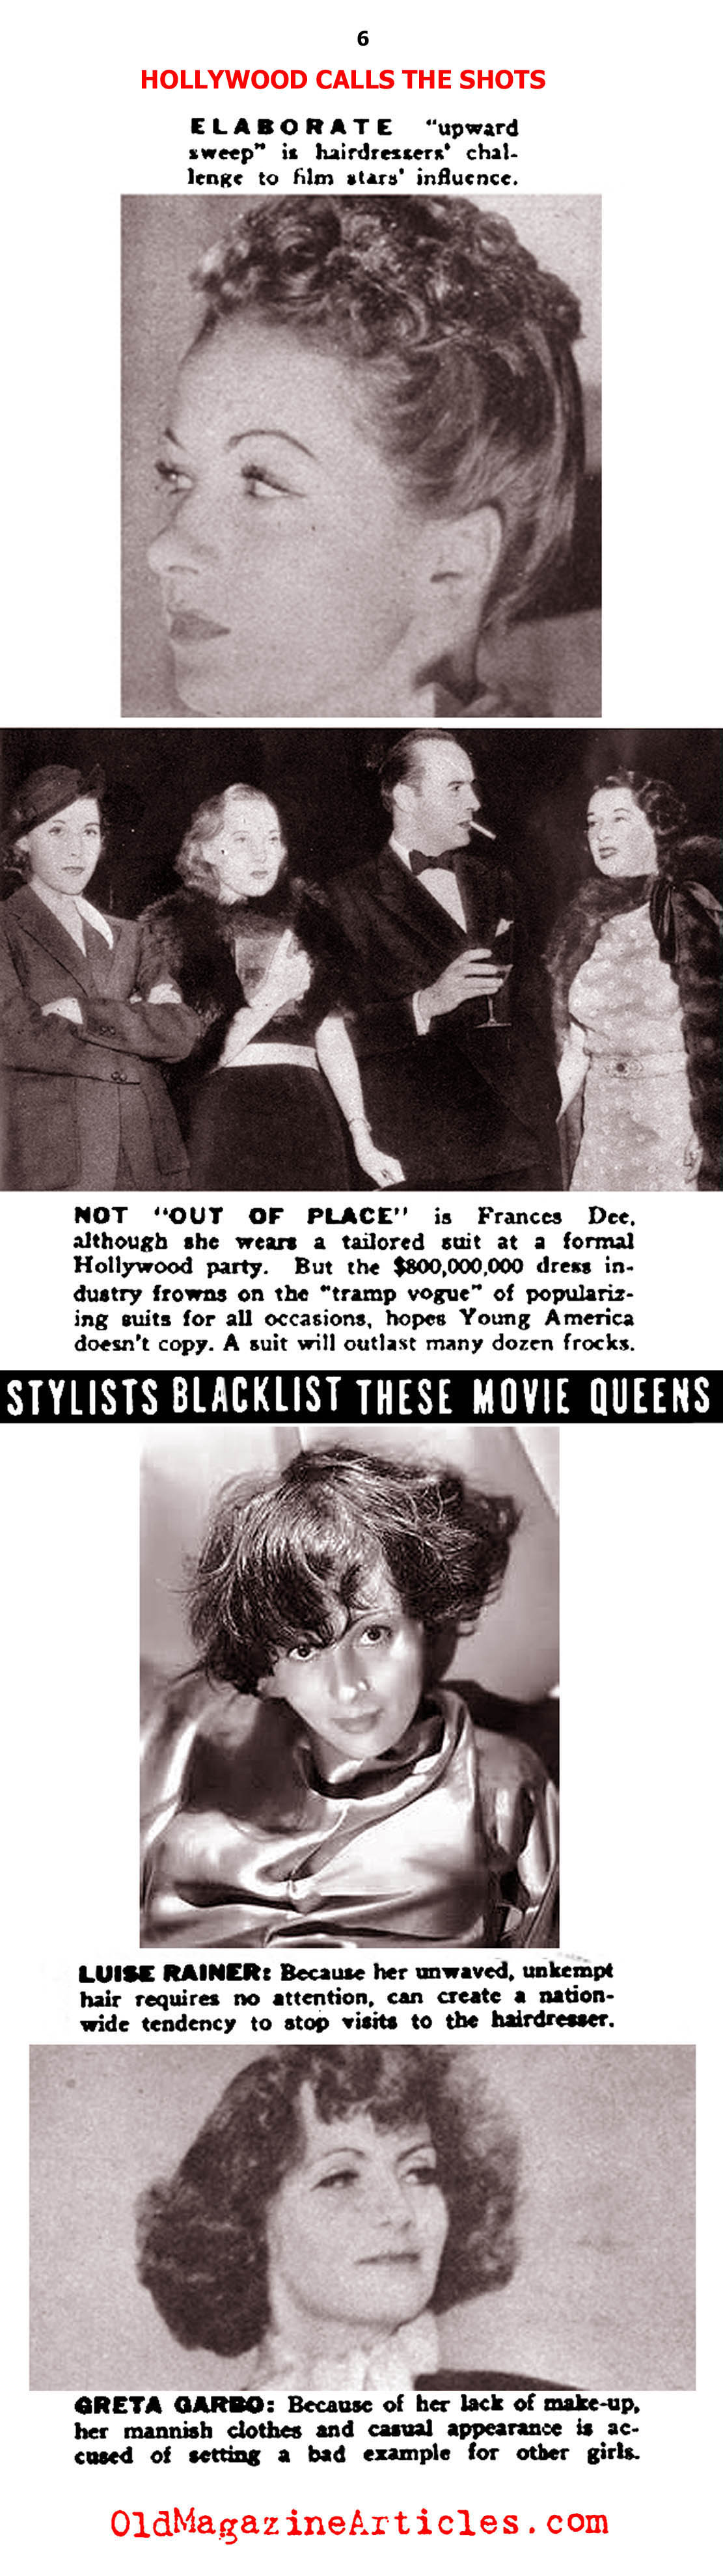 Hollywood Stylists vs the Fashion Industry (Click Magazine, 1938)